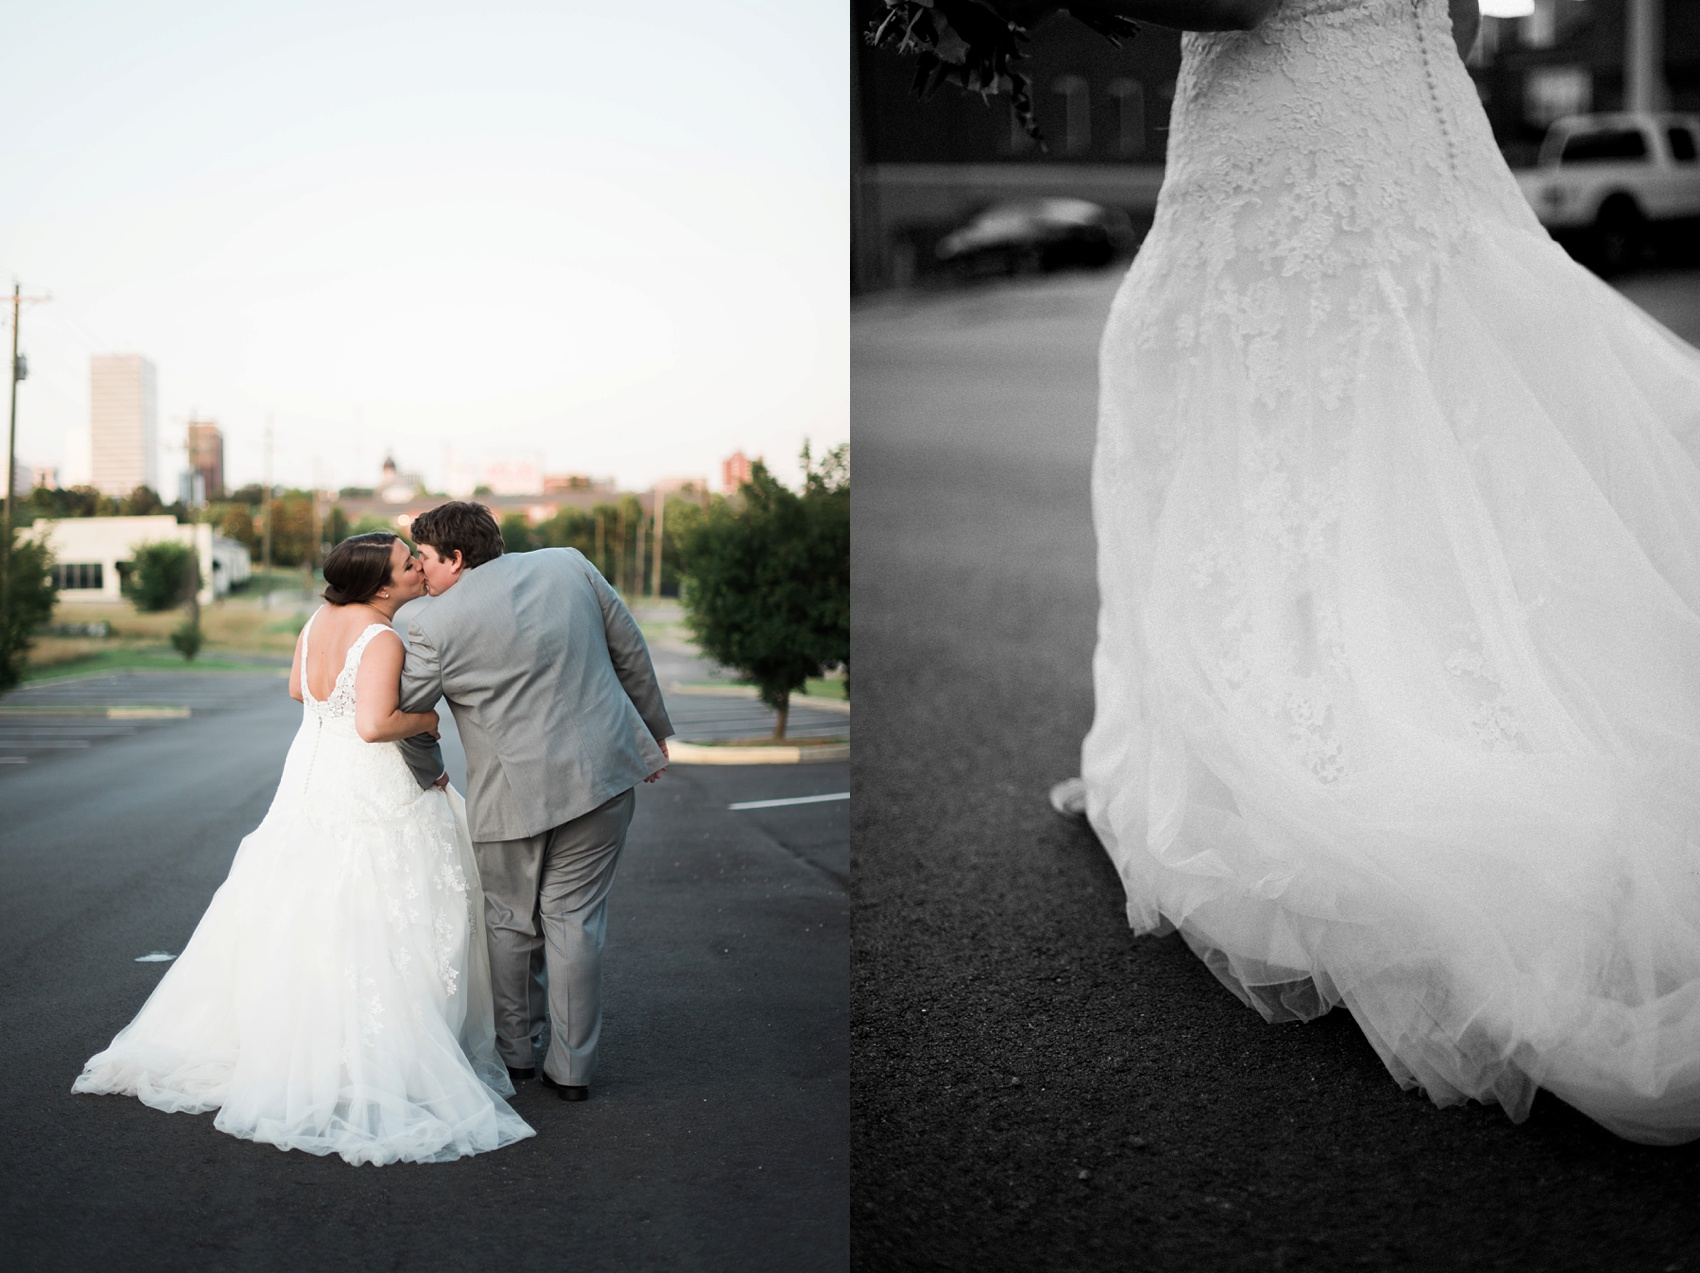 columbia_wedding_photographer_0336.jpg